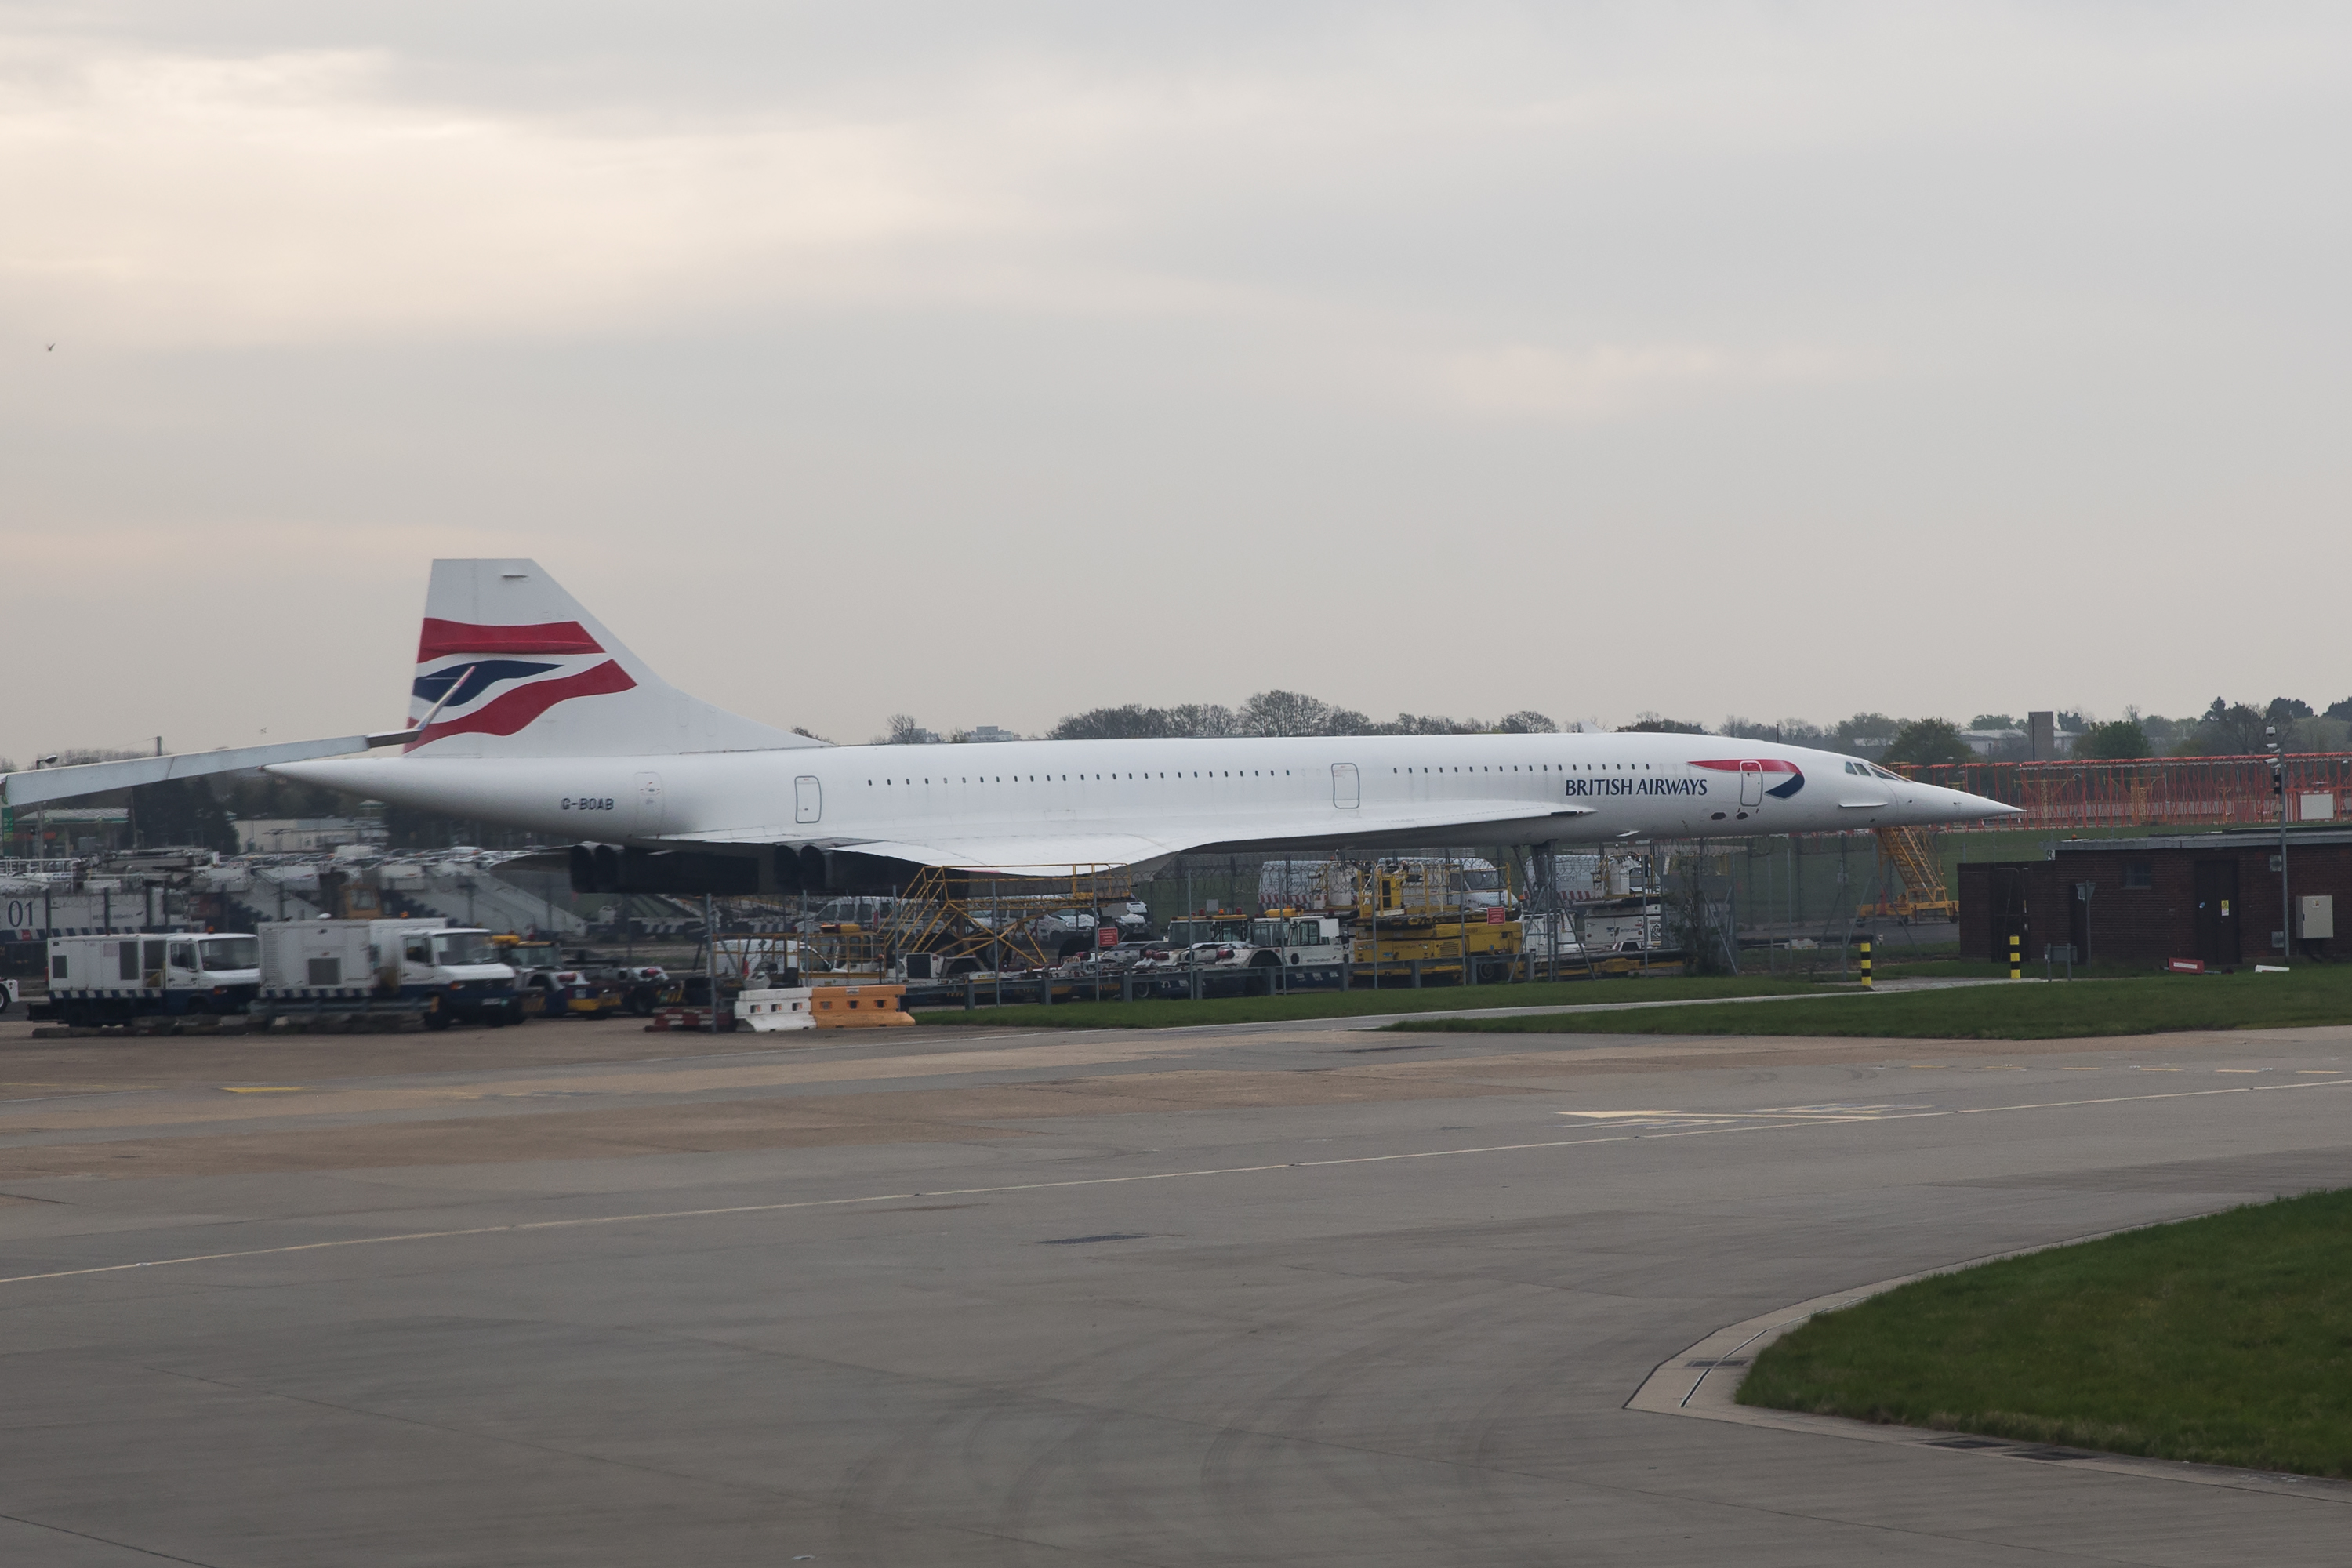 I bumped into G-BOAB also known as Alpha Bravo which is the last Concorde to remain at Heathrow